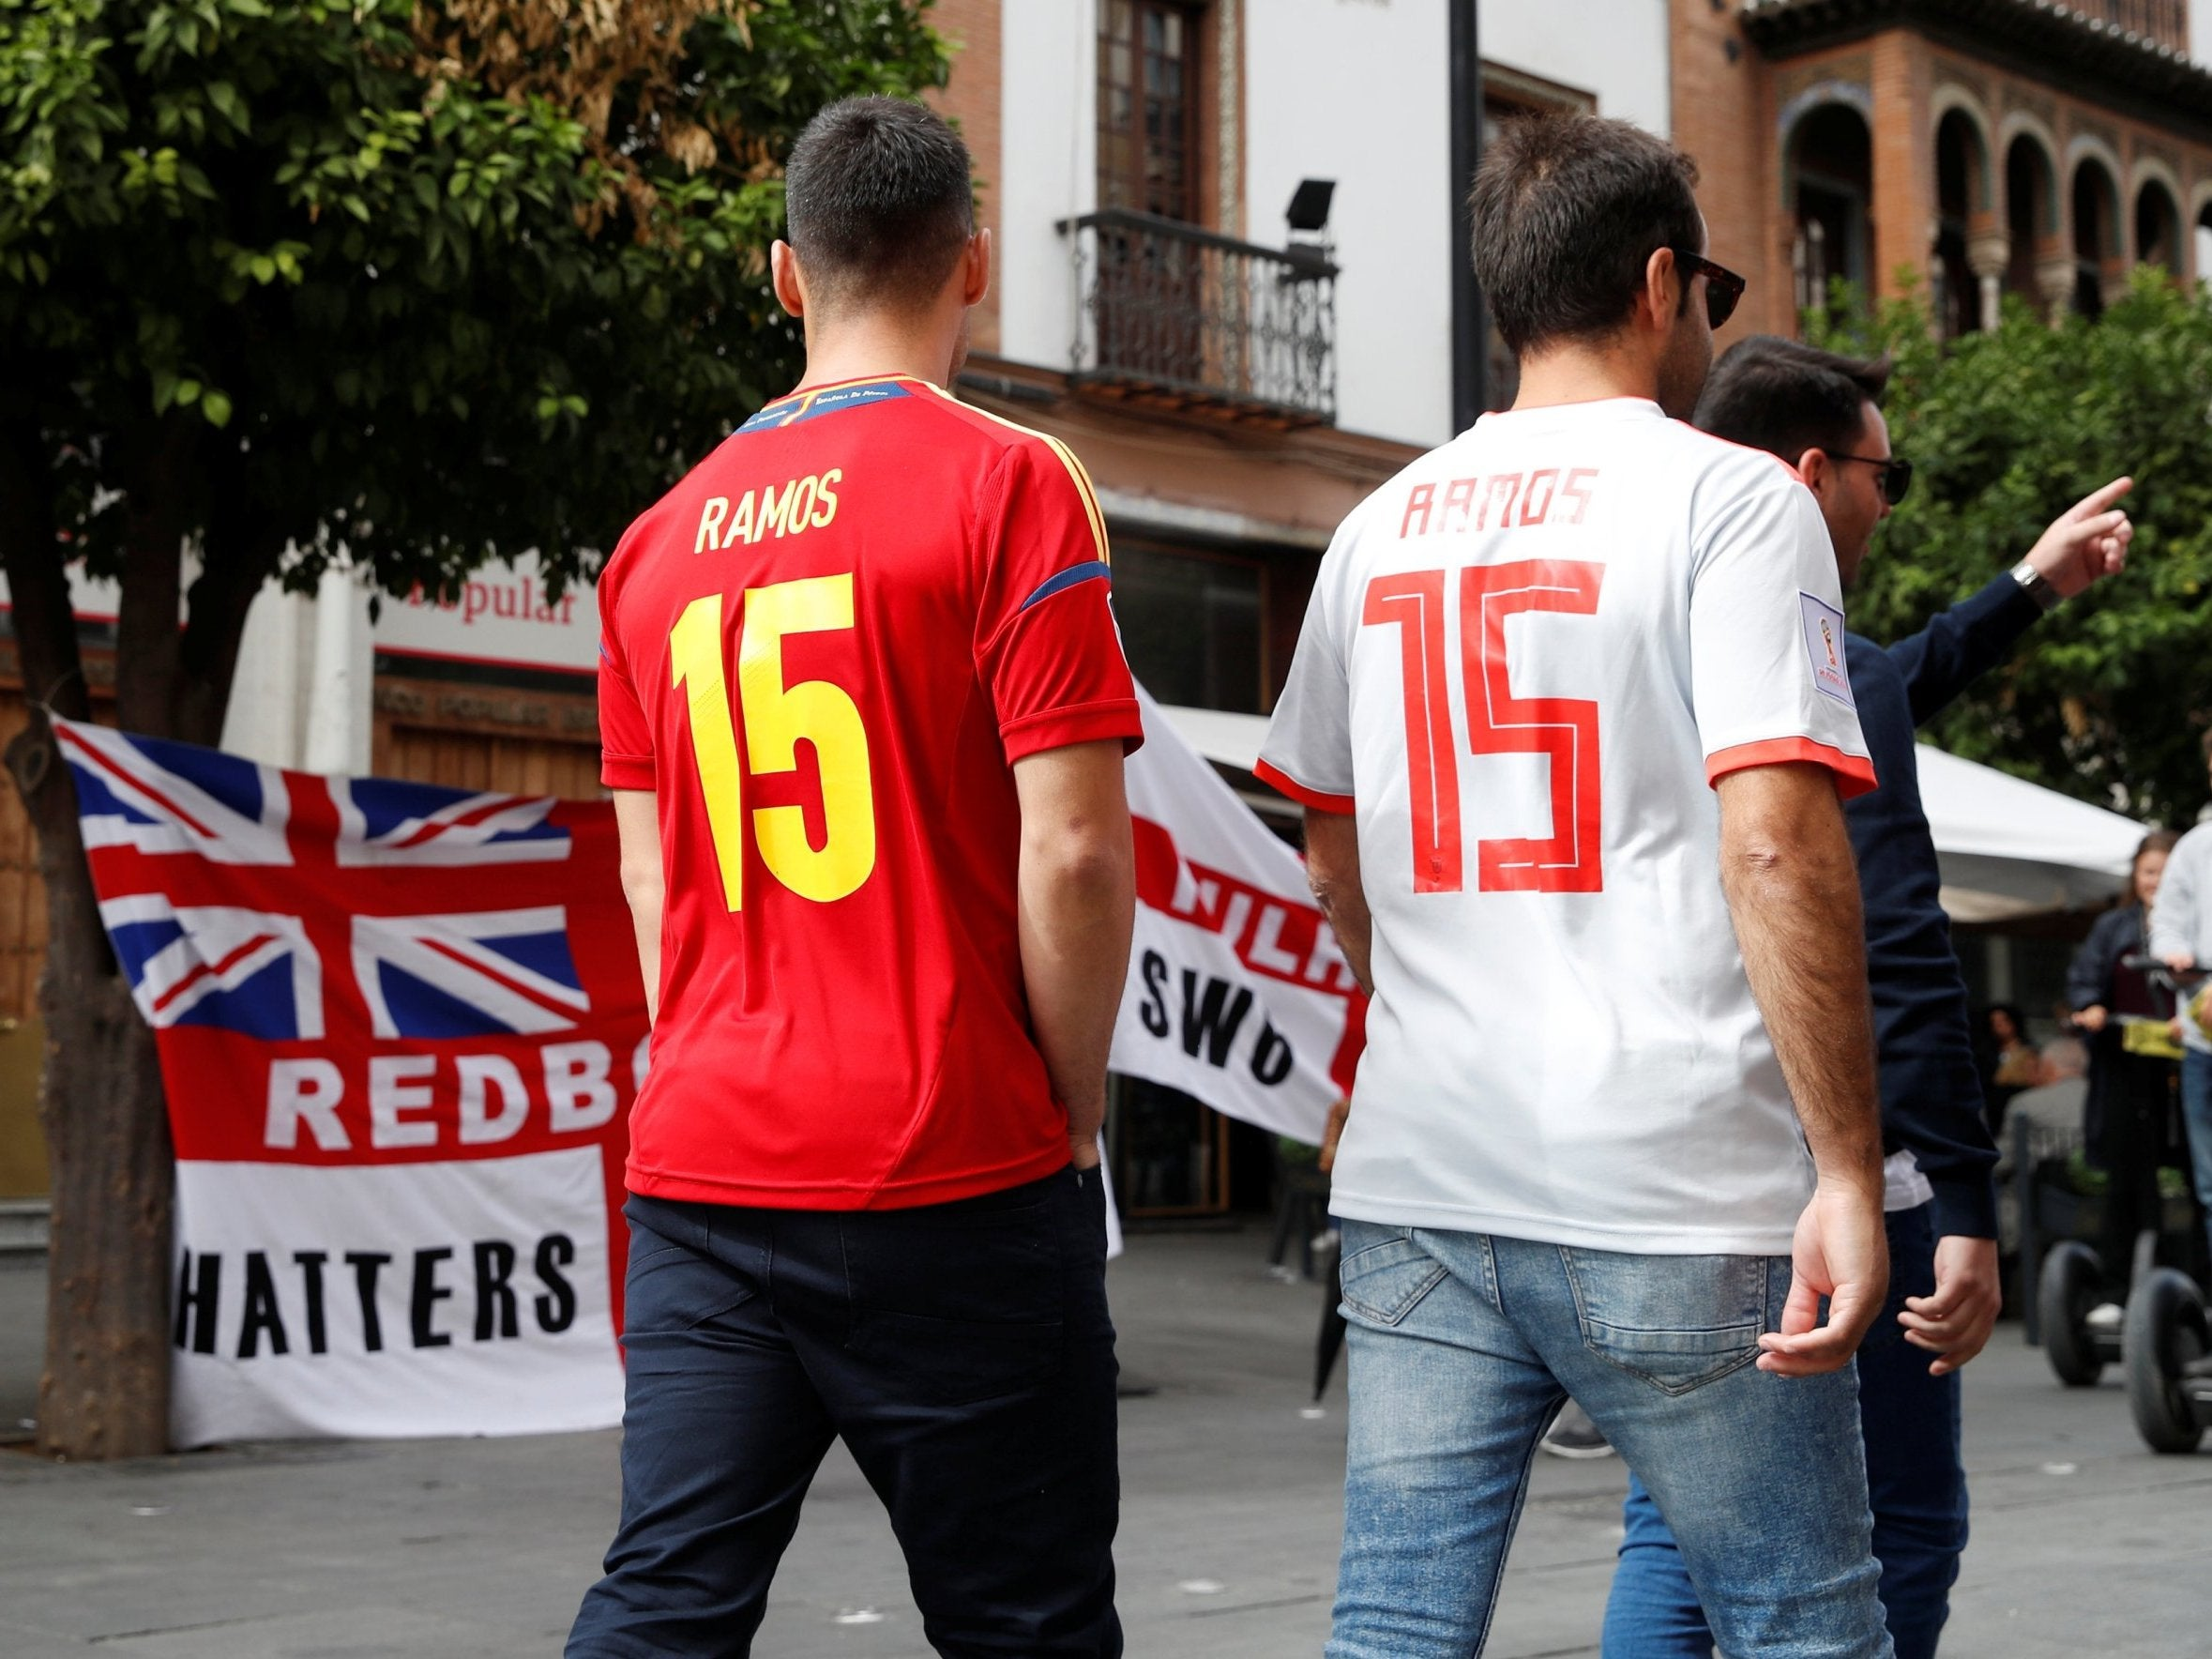 spain vs england - photo #15